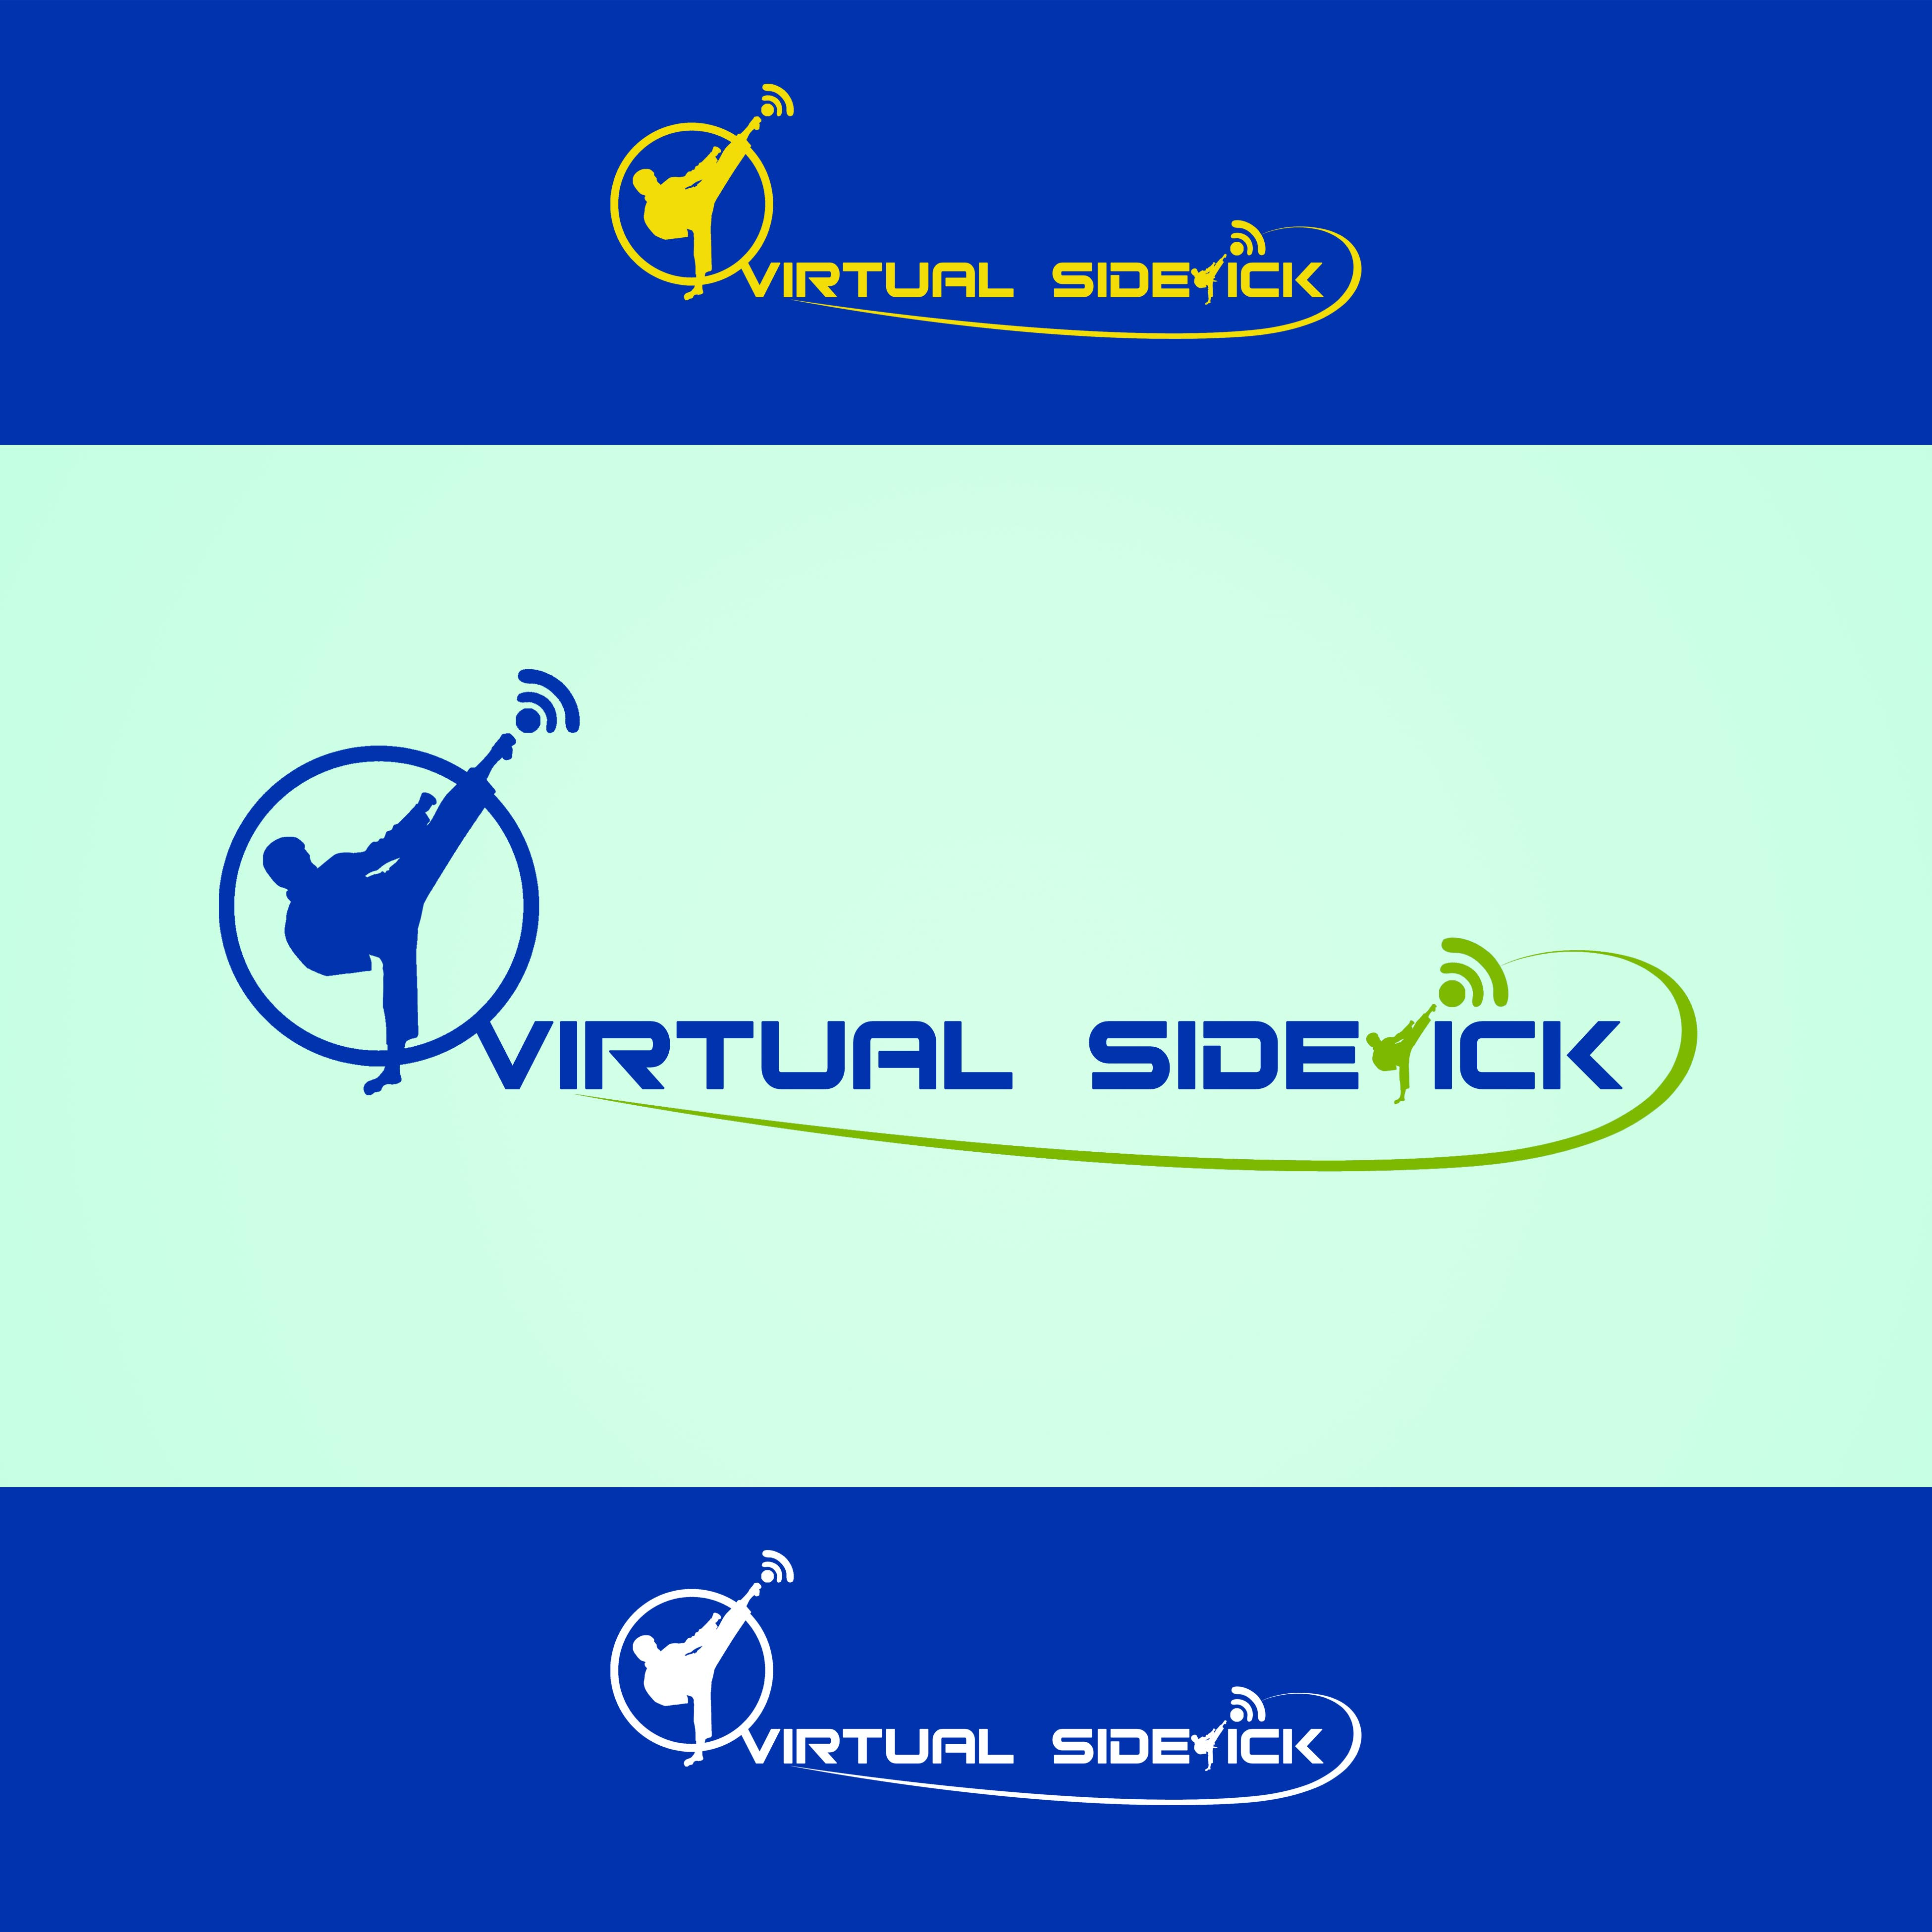 Logo Design by Cesar III Sotto - Entry No. 34 in the Logo Design Contest Fun Logo Design for Virtual Sidekick.